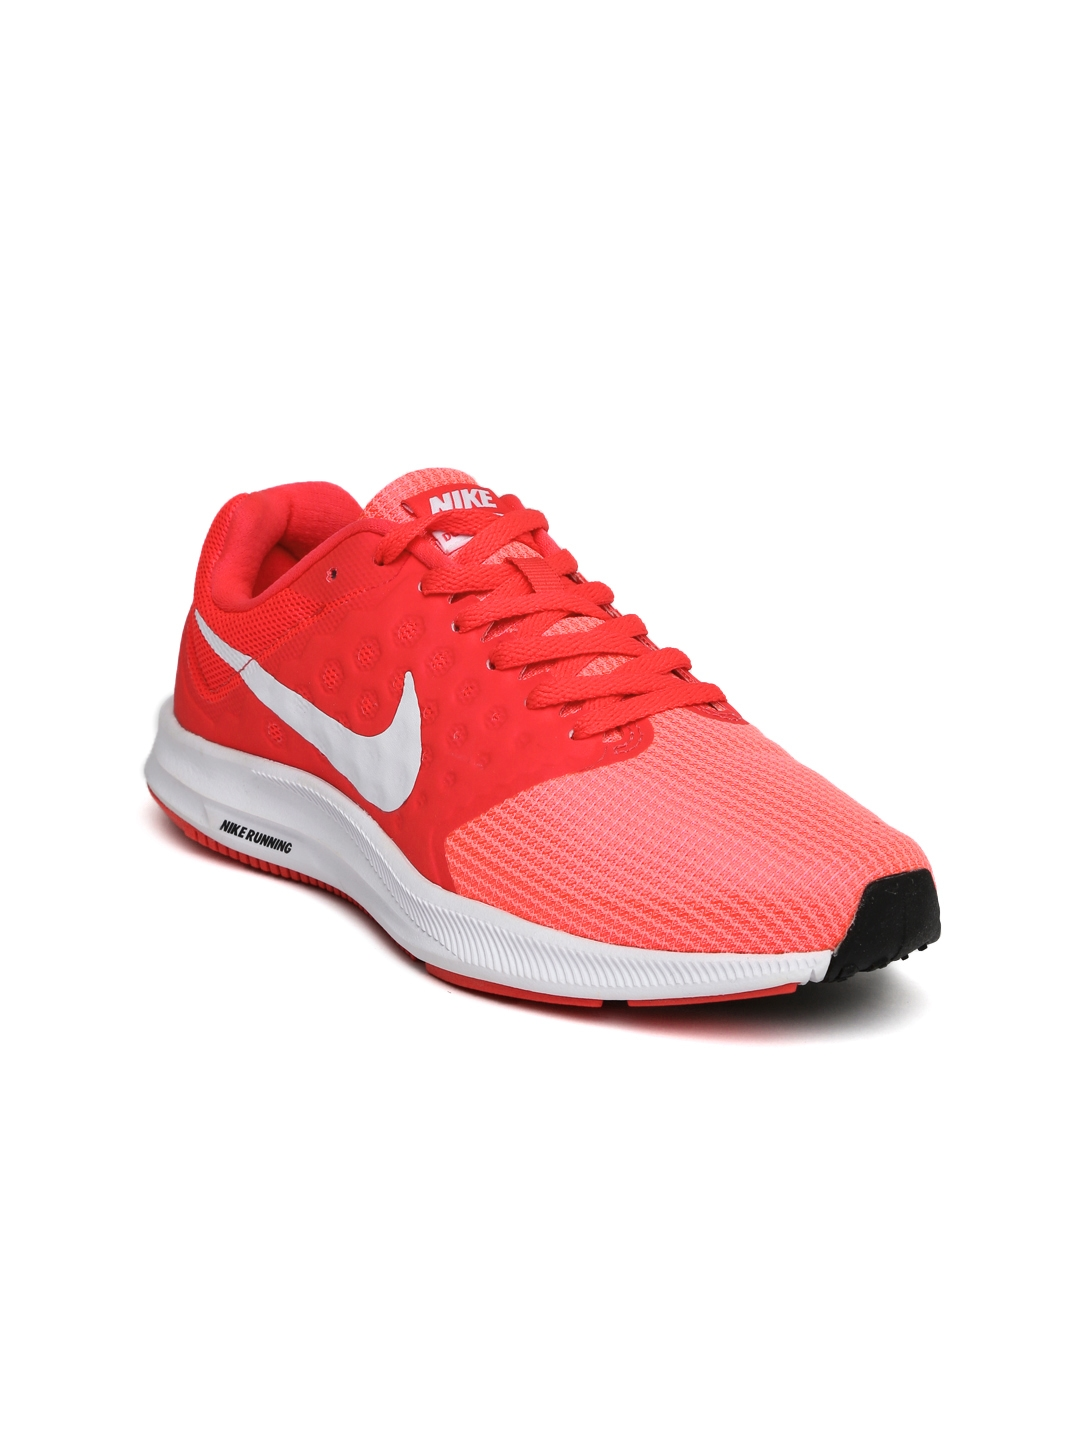 b82f792a6b3 Buy Nike Women Pink DOWNSHIFTER 7 Running Shoes - Sports Shoes for ...